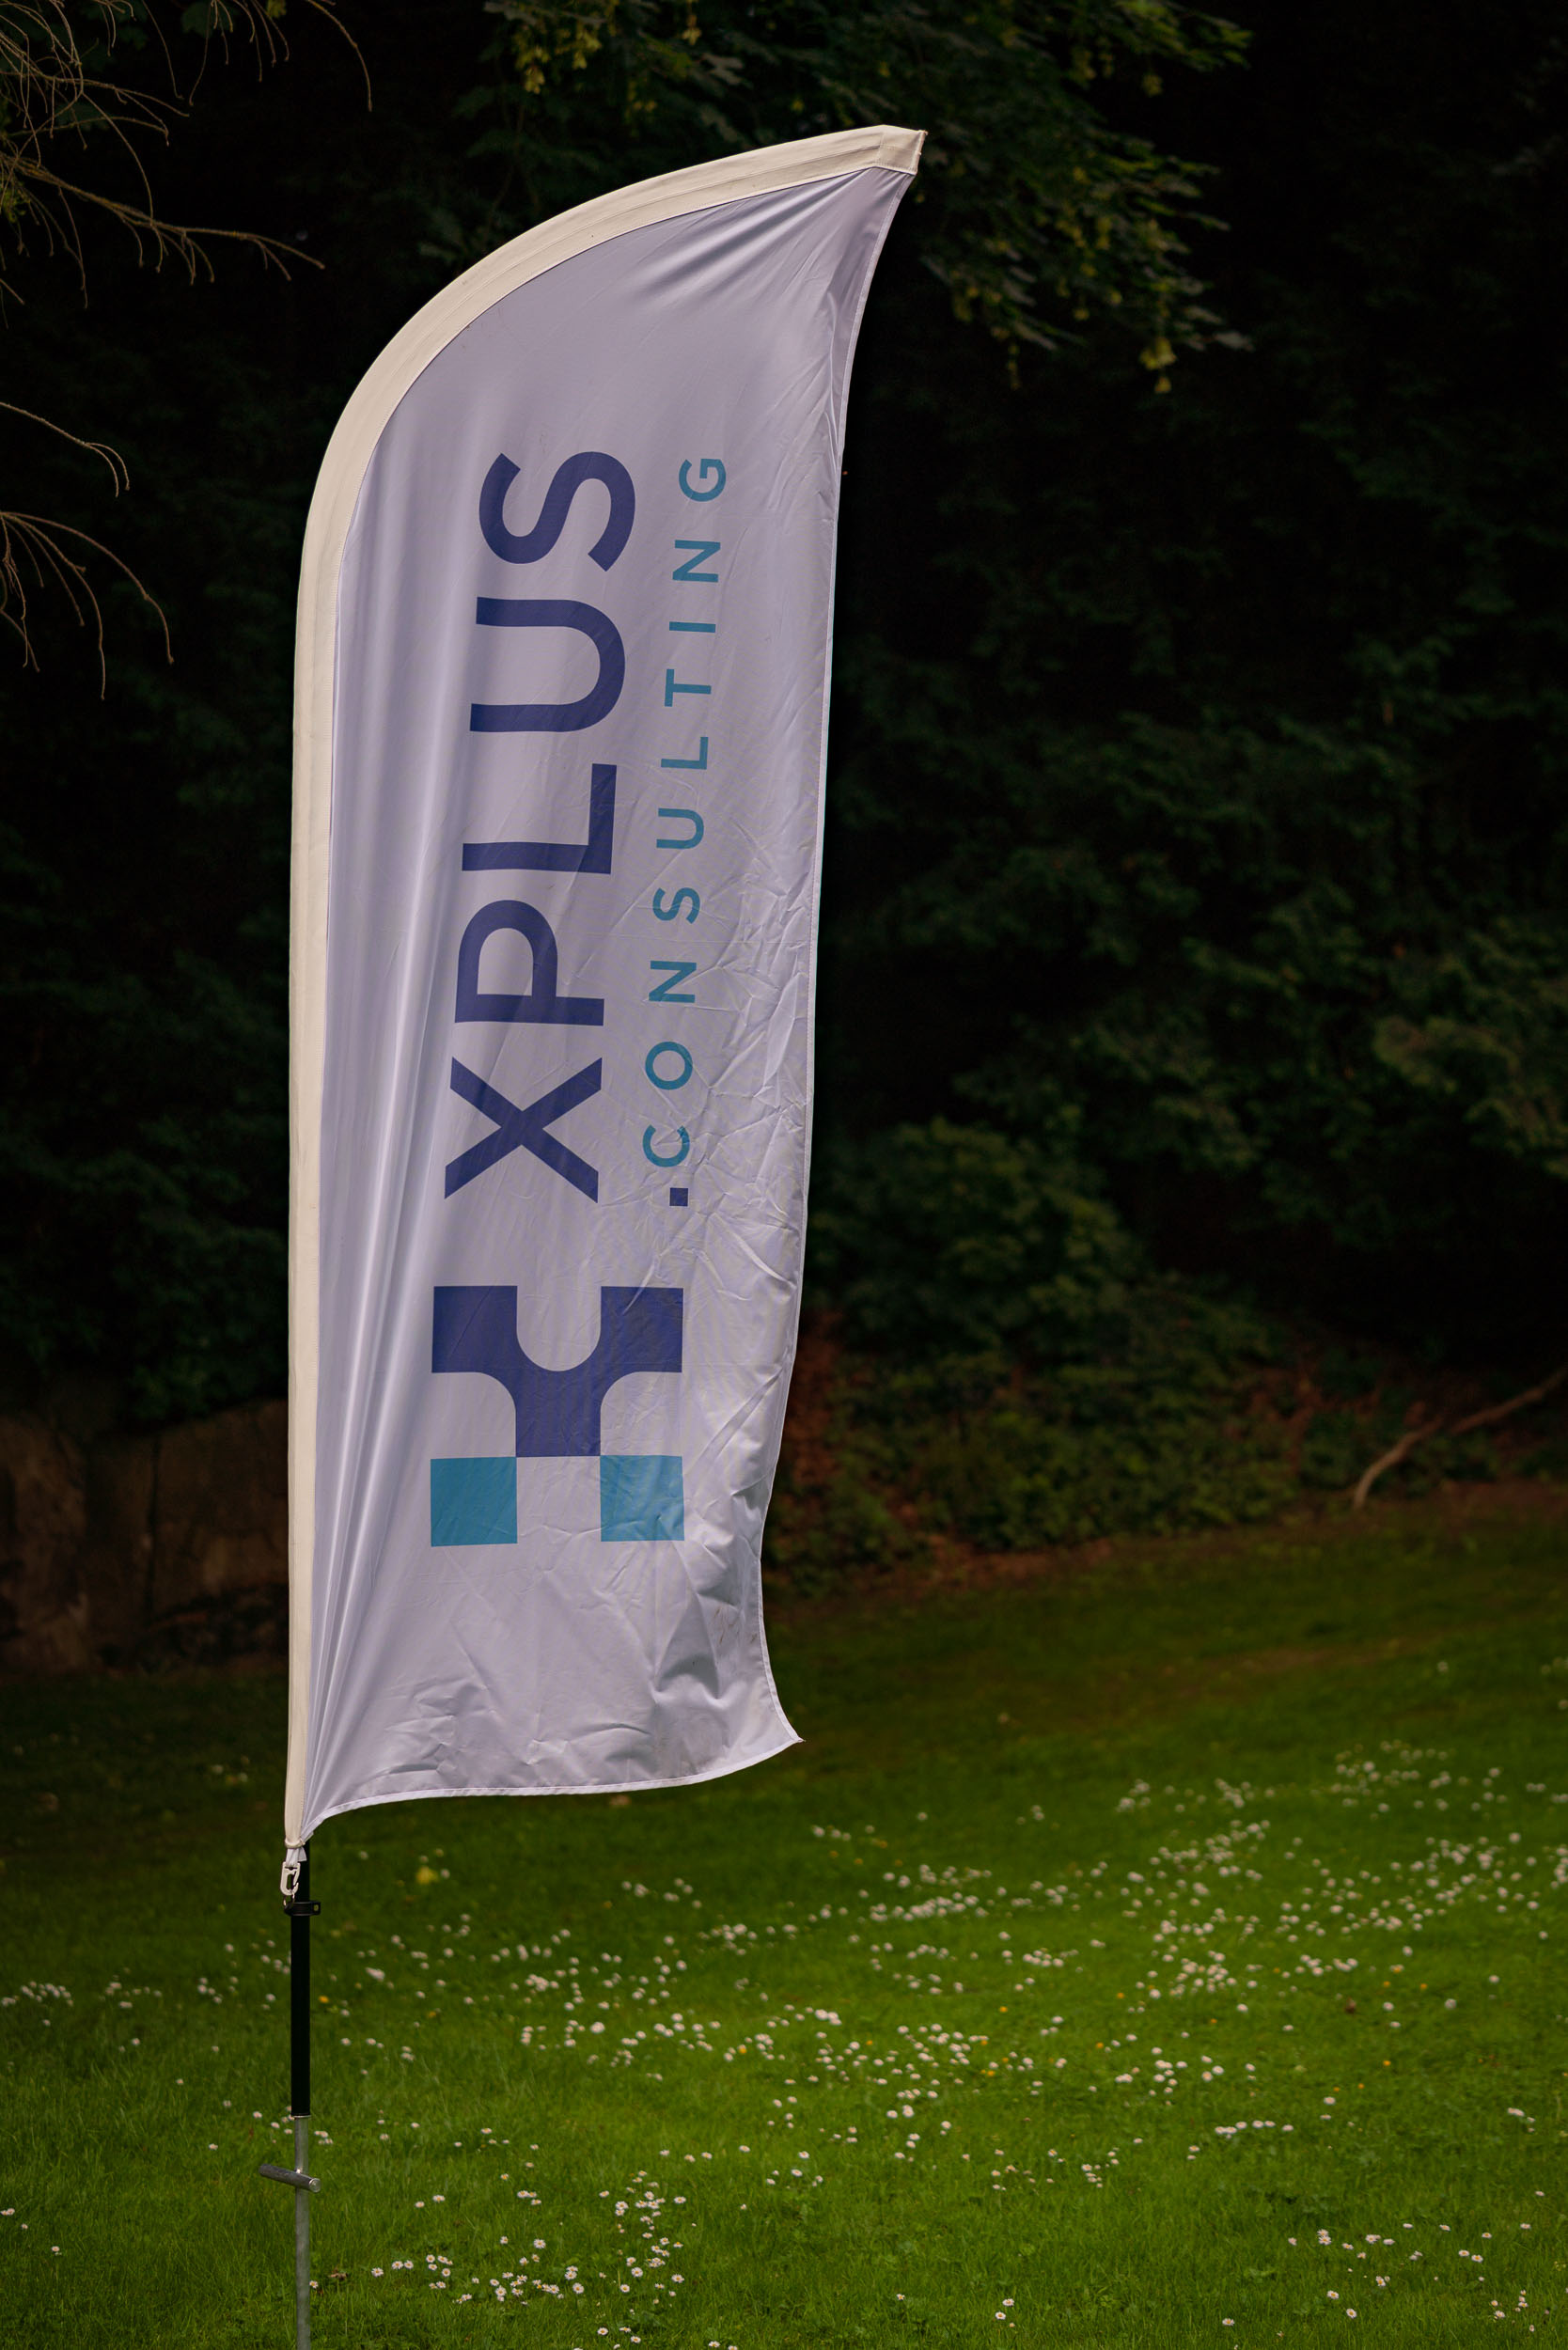 Evening of the company XPlus. Photograph taken by a corporate ph